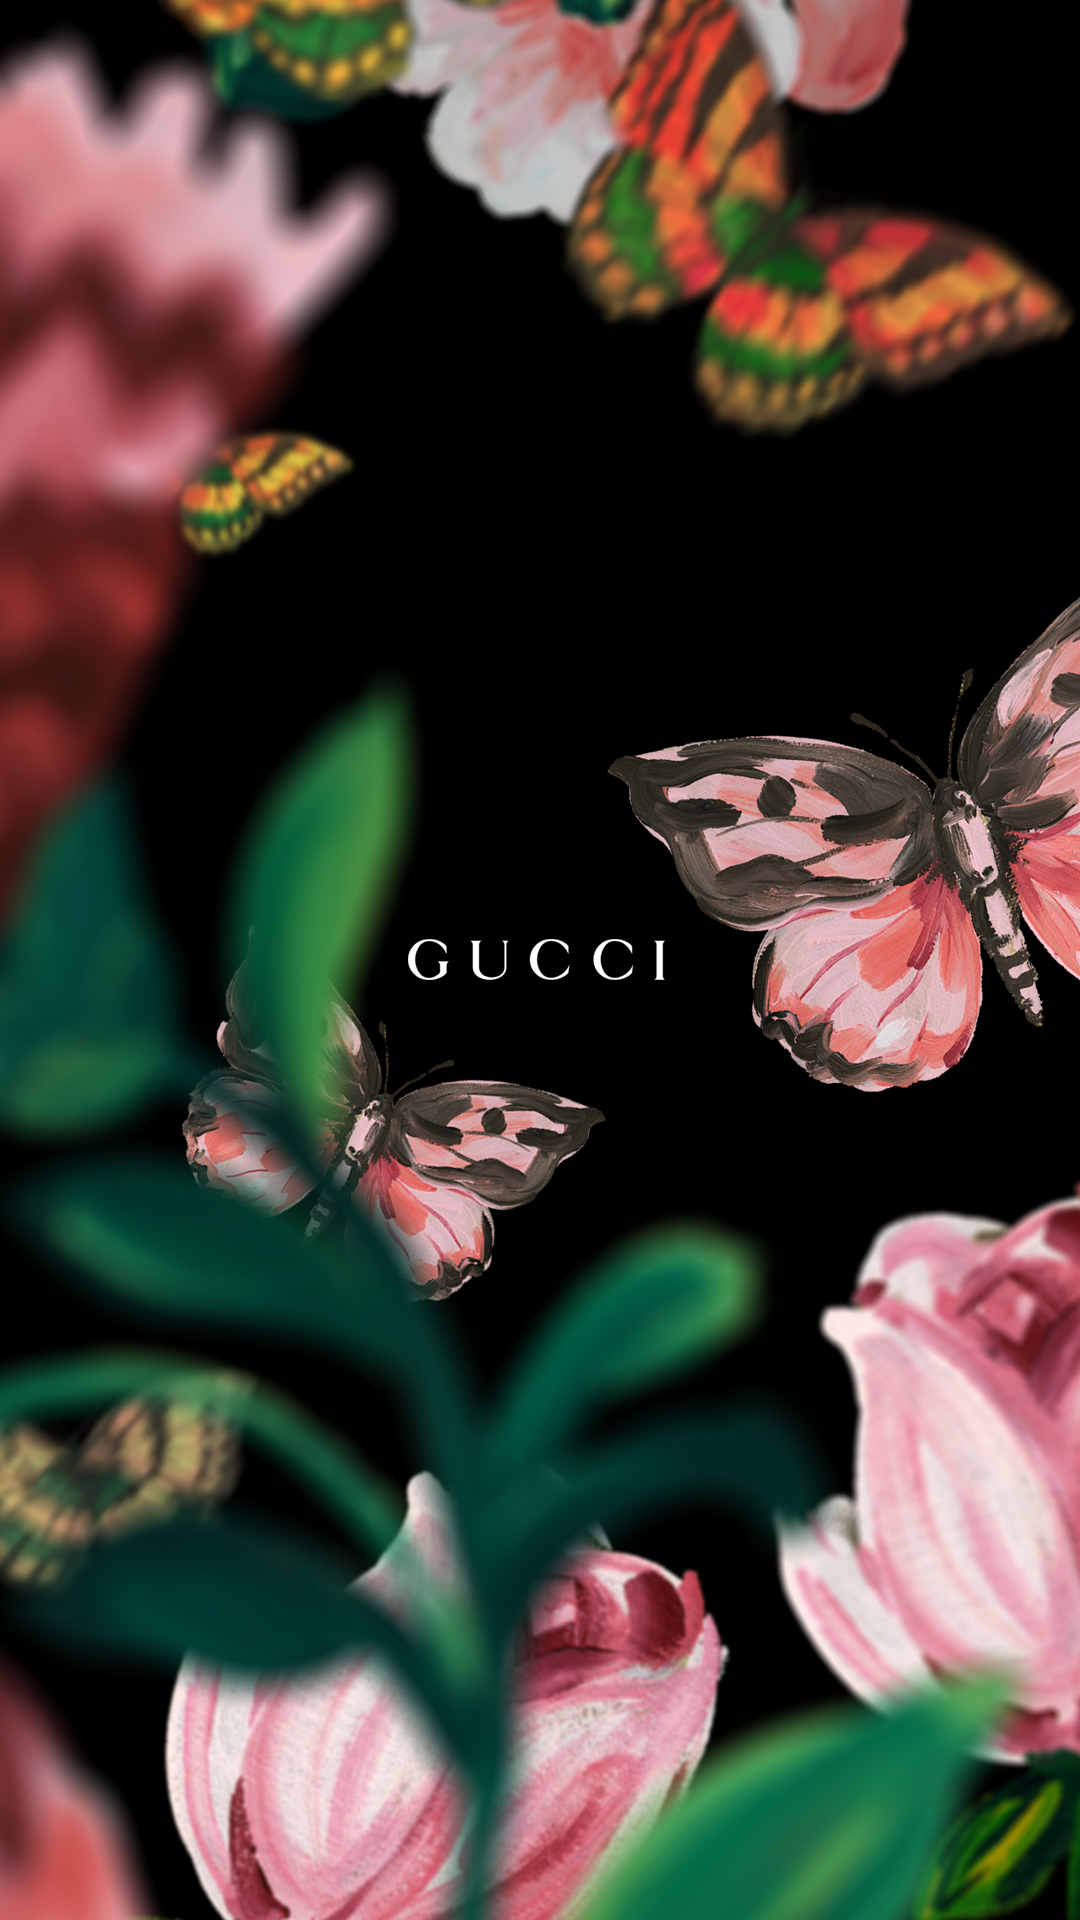 Gucci Snake Wallpaper - WallpaperSafari